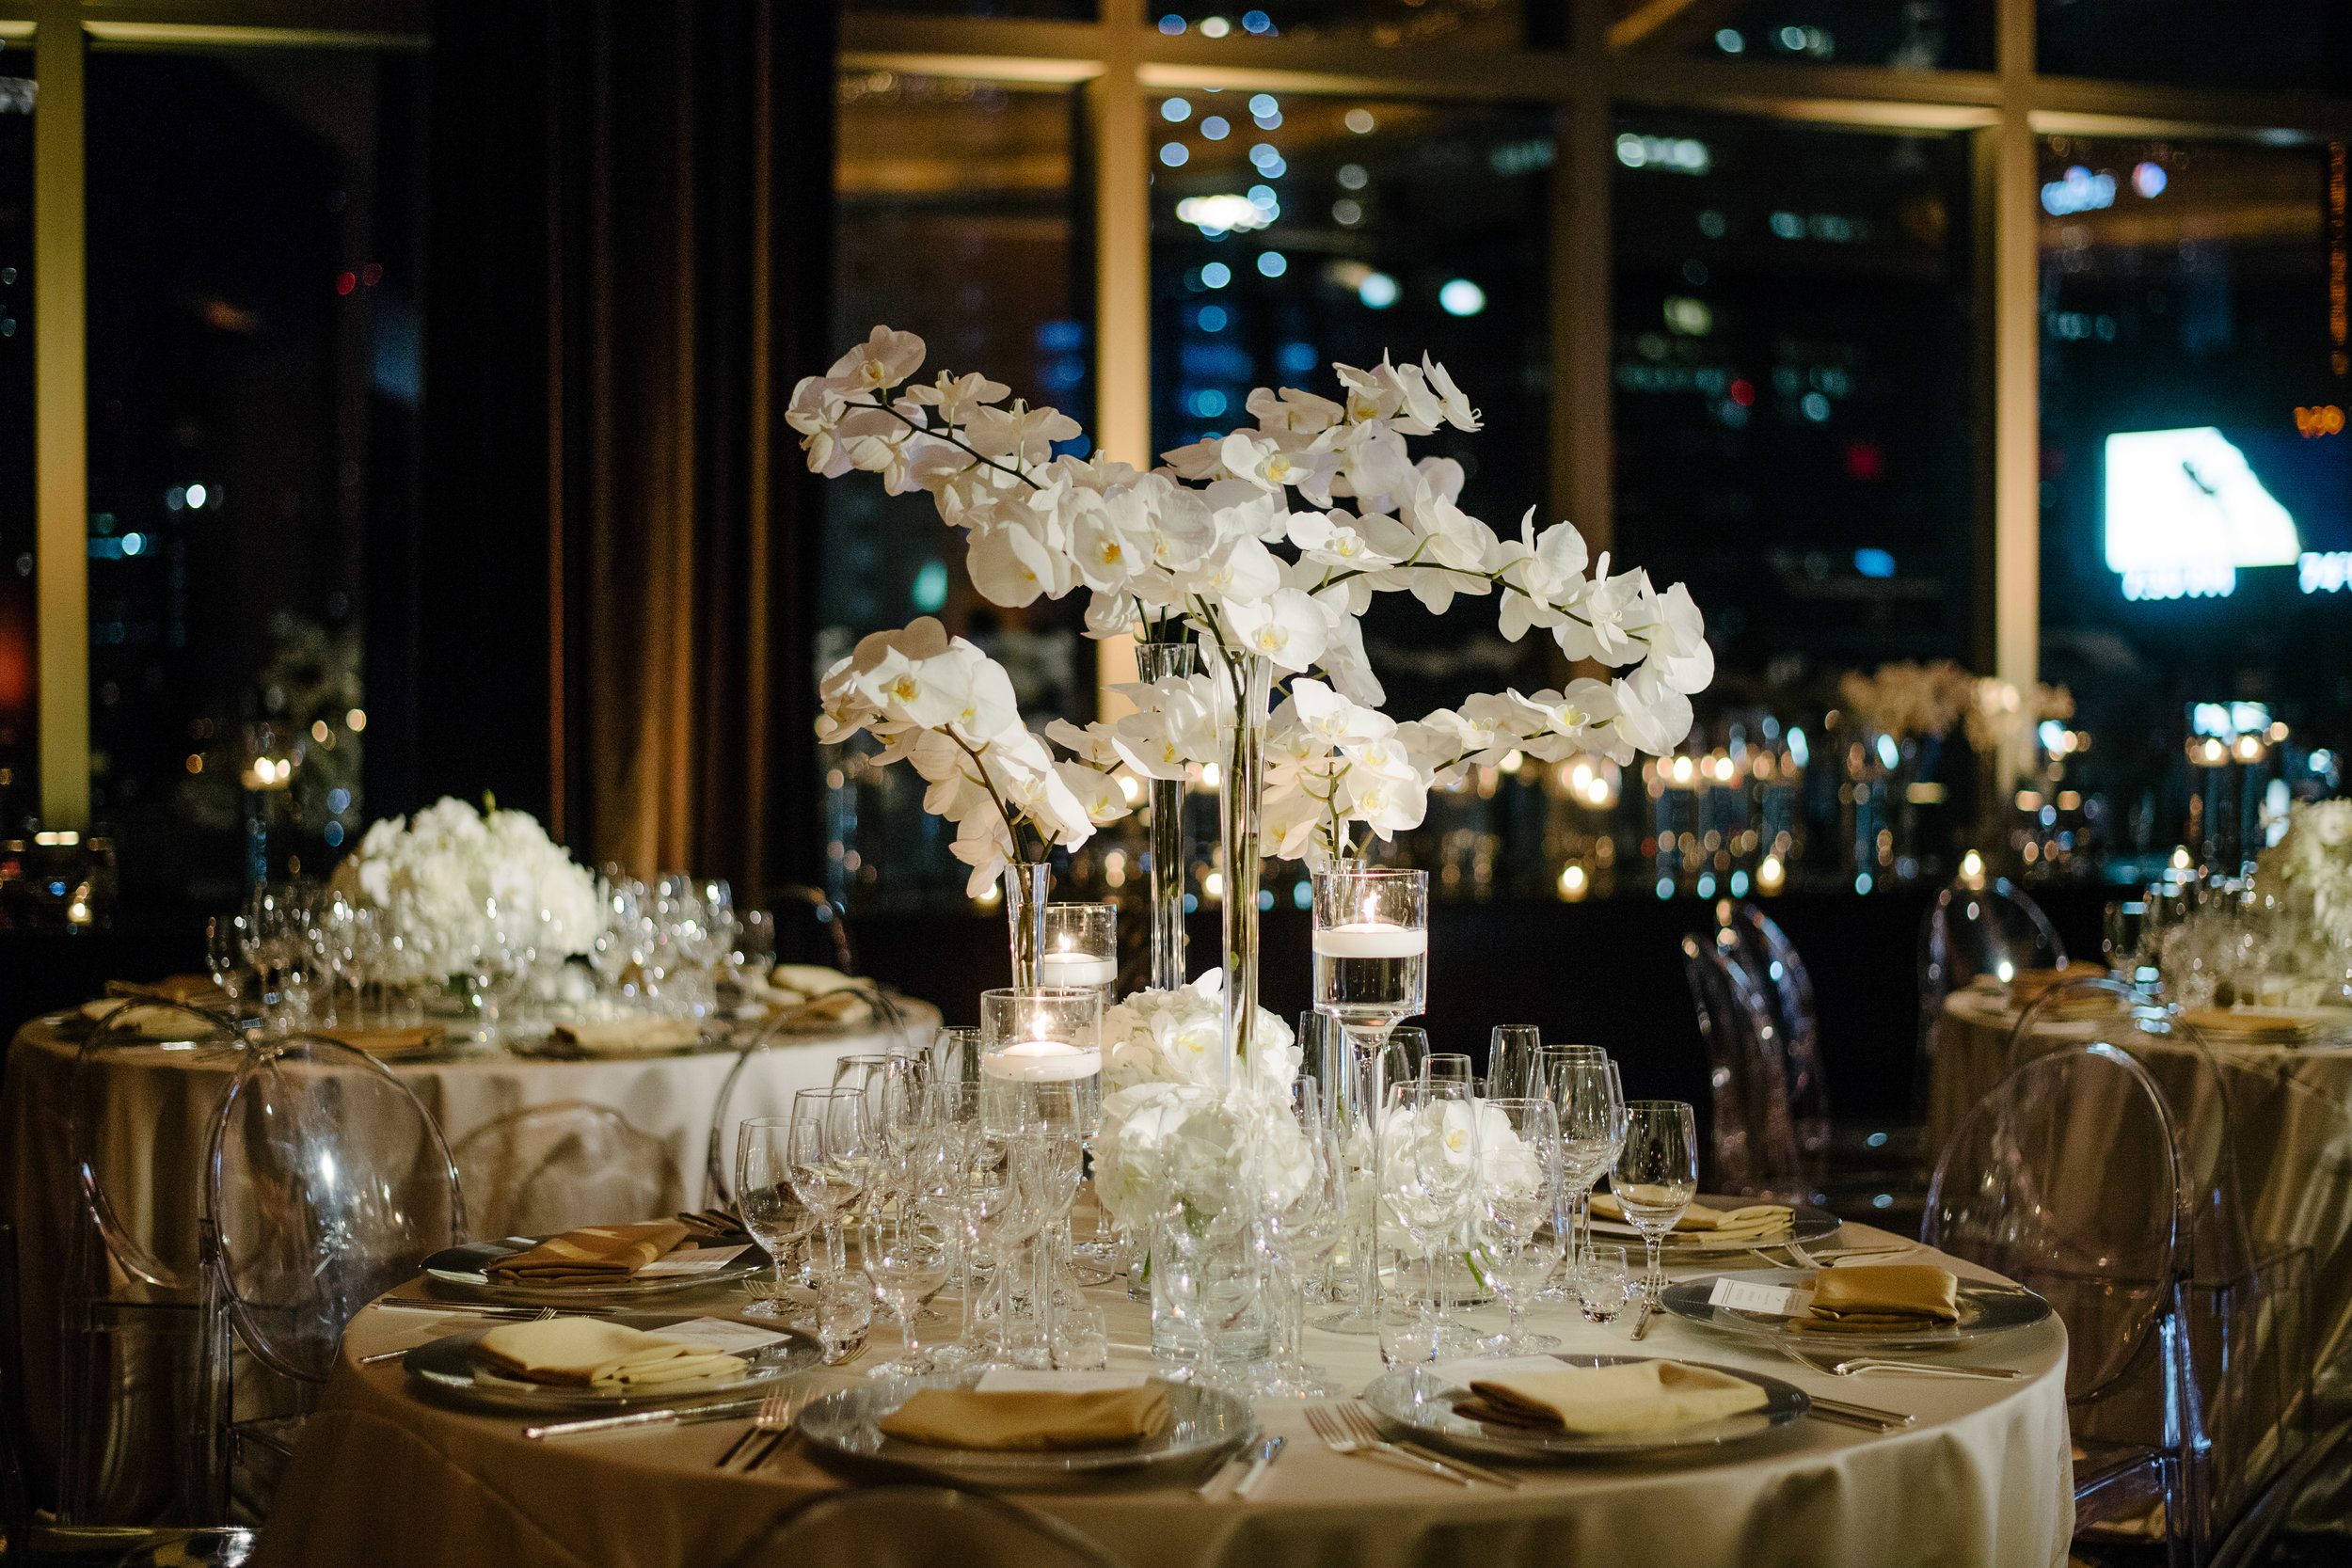 New-York-Wedding-Mandarin-Oriental-Andrea-Freeman-Events-11.jpg